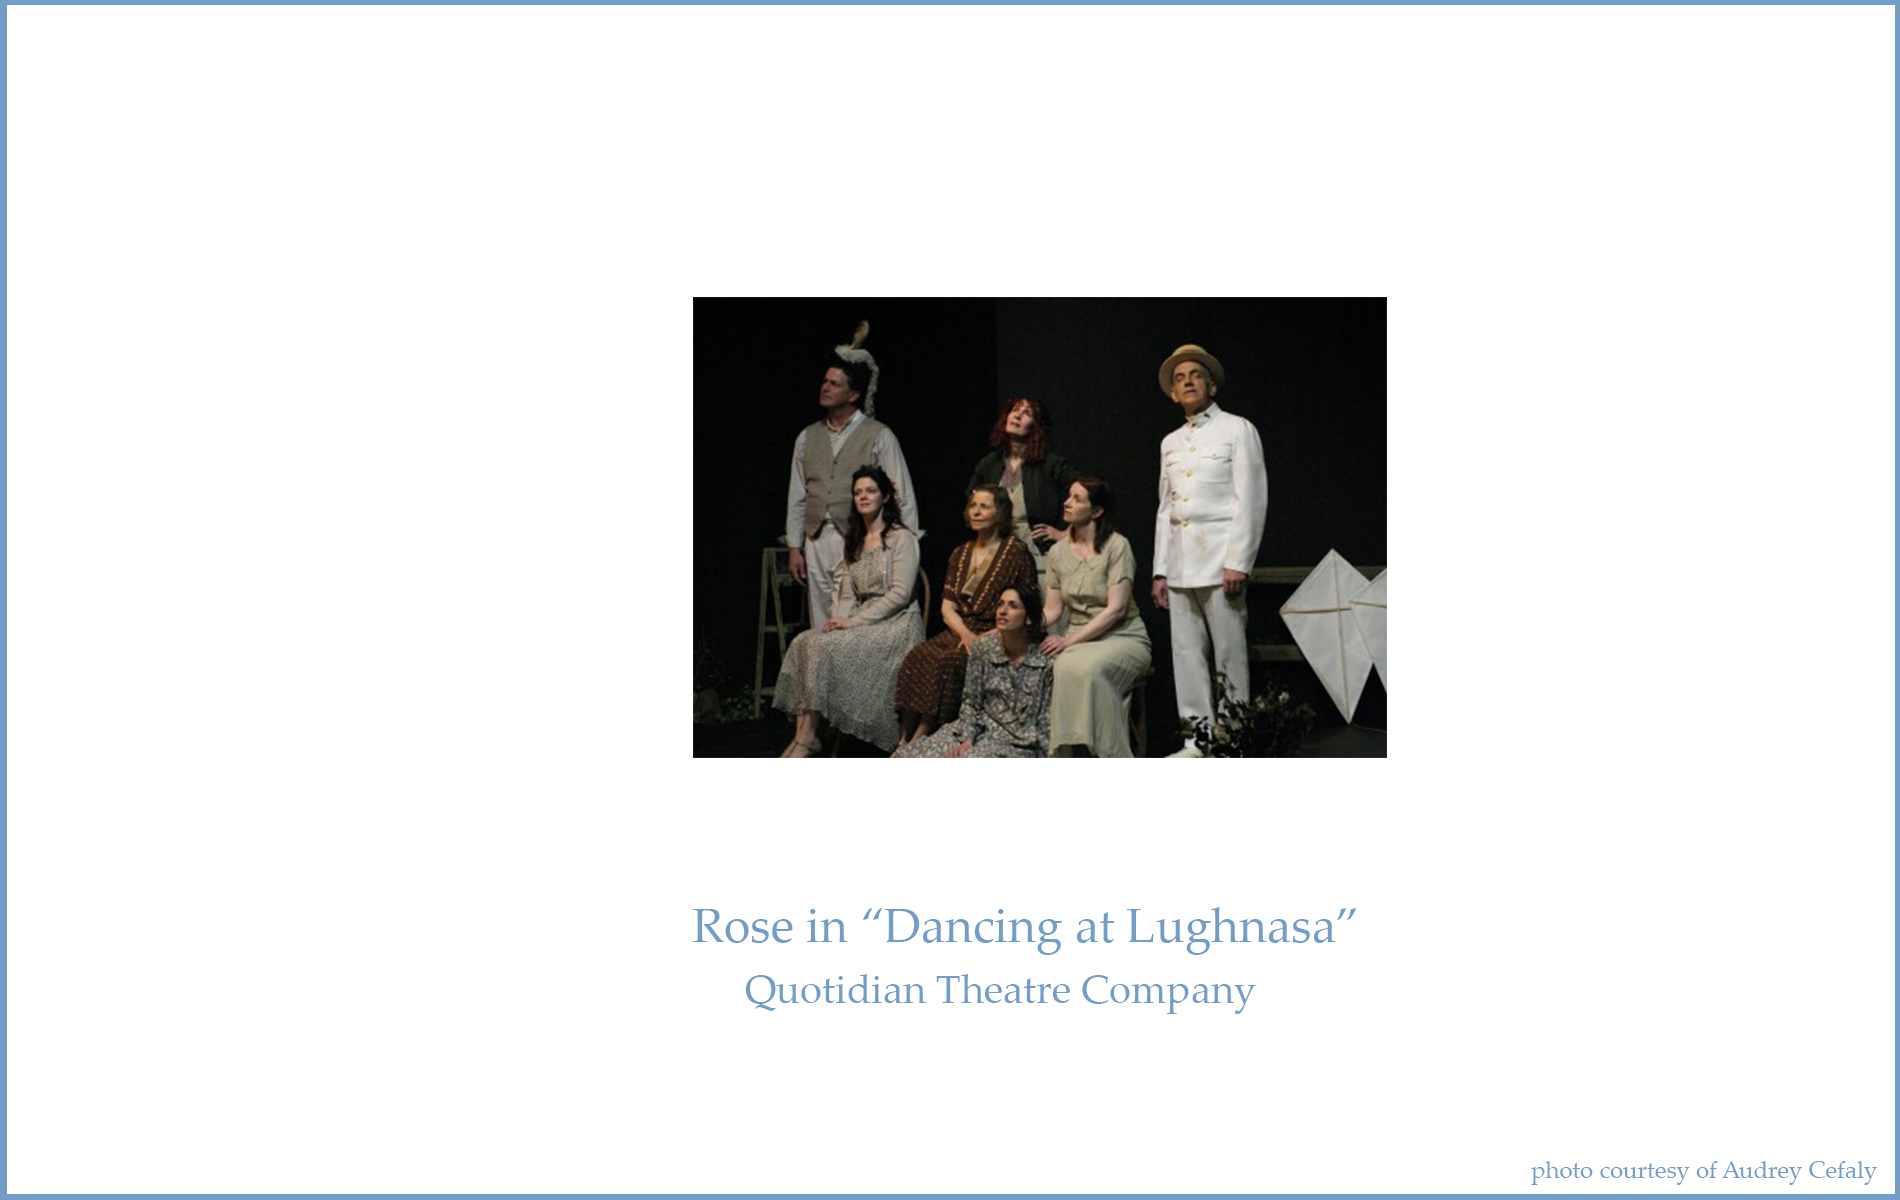 rose dancing at lughnasa essay Free essay: dancing at lughnasa the dancing scene in 'dancing at lughnasa' is important as it allows the reader to learn more about the individual characters.